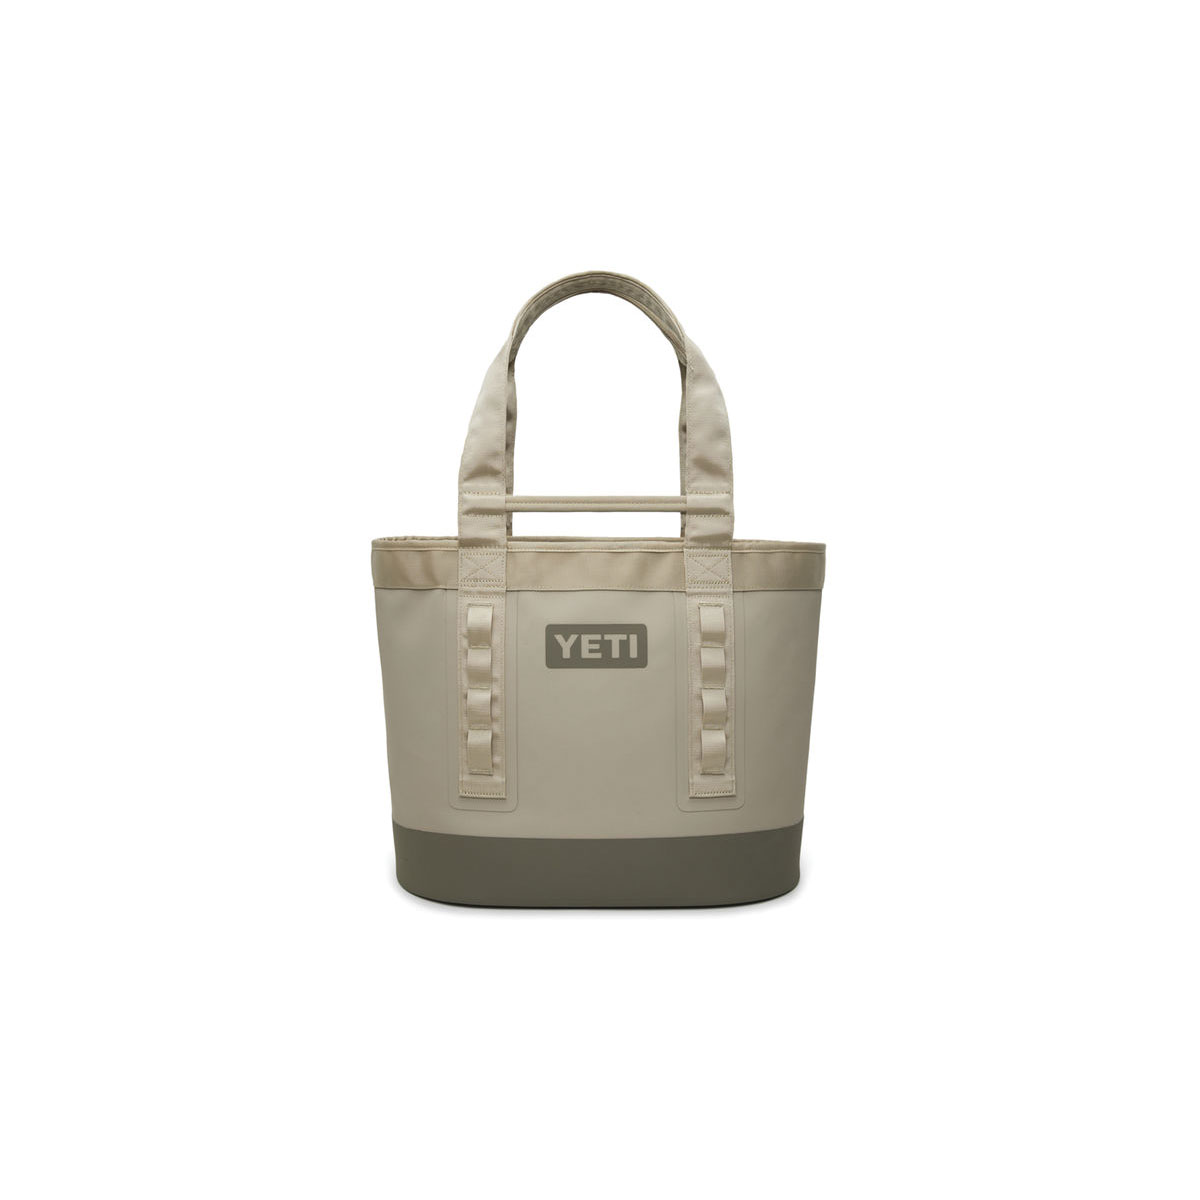 Picture of YETI Camino 35 26010000002 Tote Bag, Everglade Sand, 9-7/8 in L, 18-1/8 in W, 14-7/8 in H